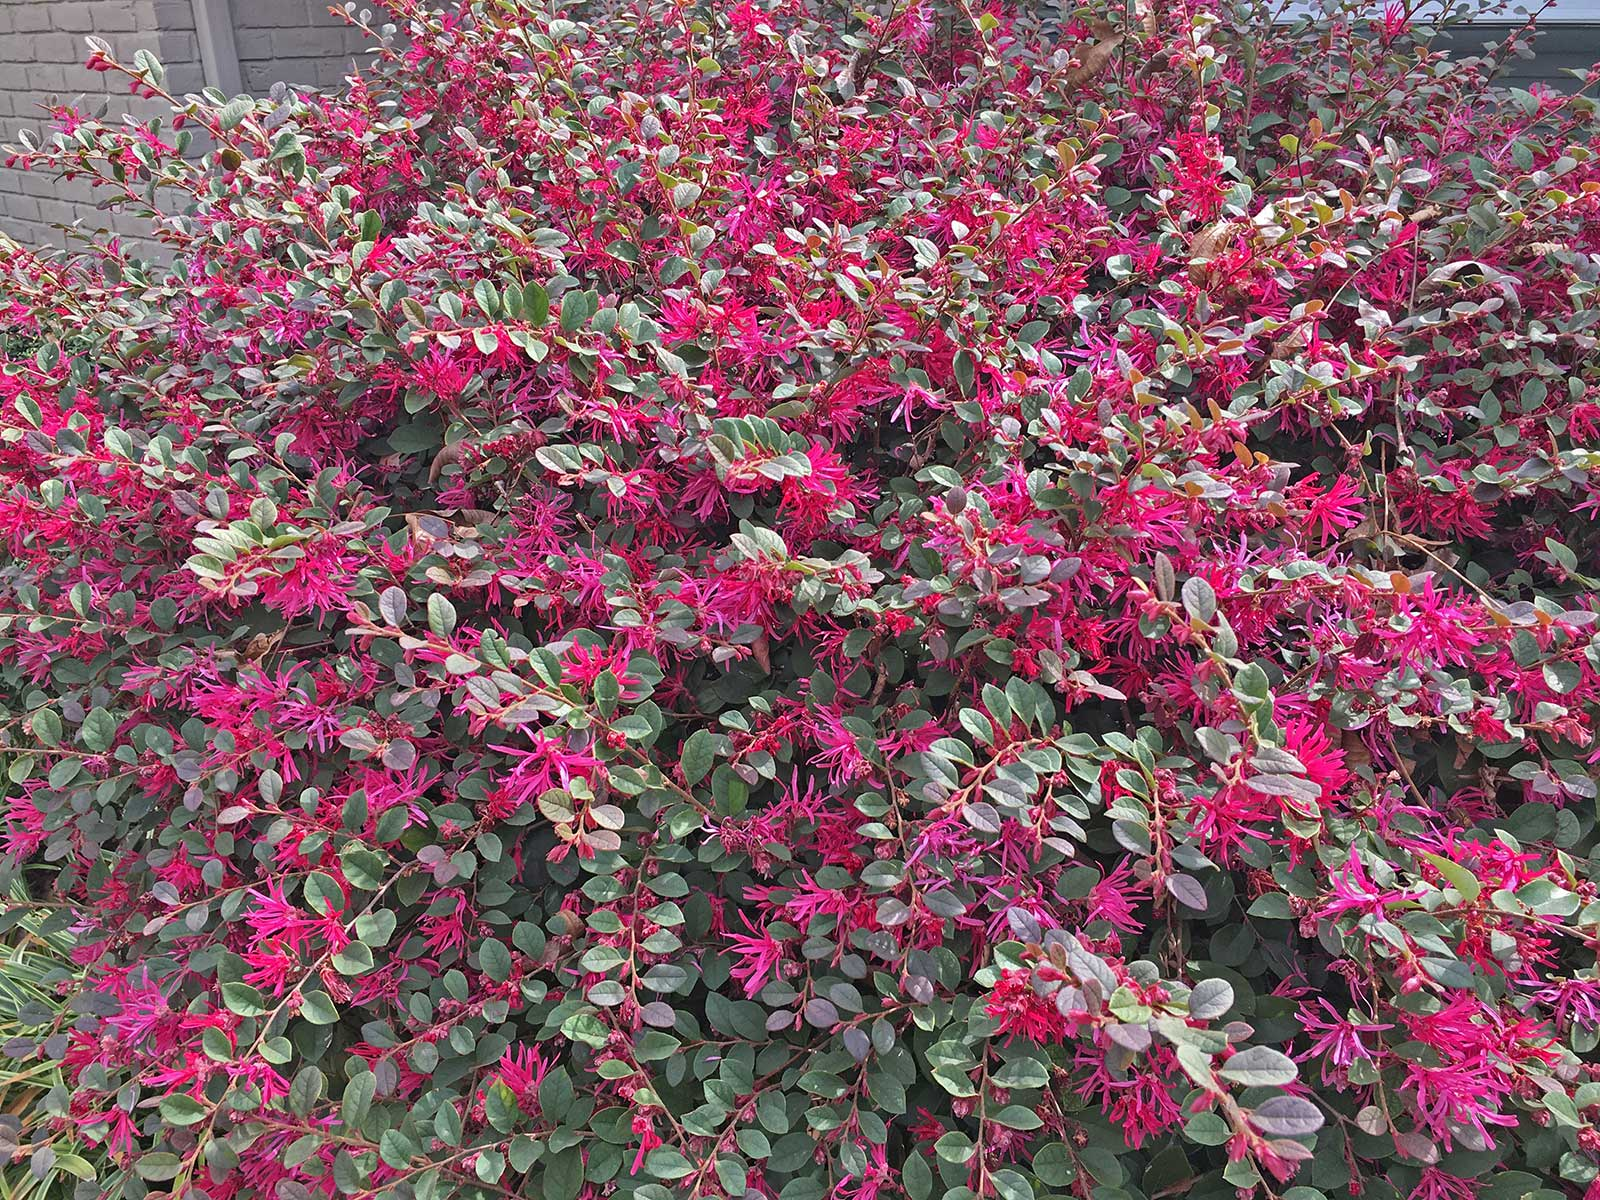 Bright pink spring time blooms on the Loropetalum that give it it's Fringe Flower name.